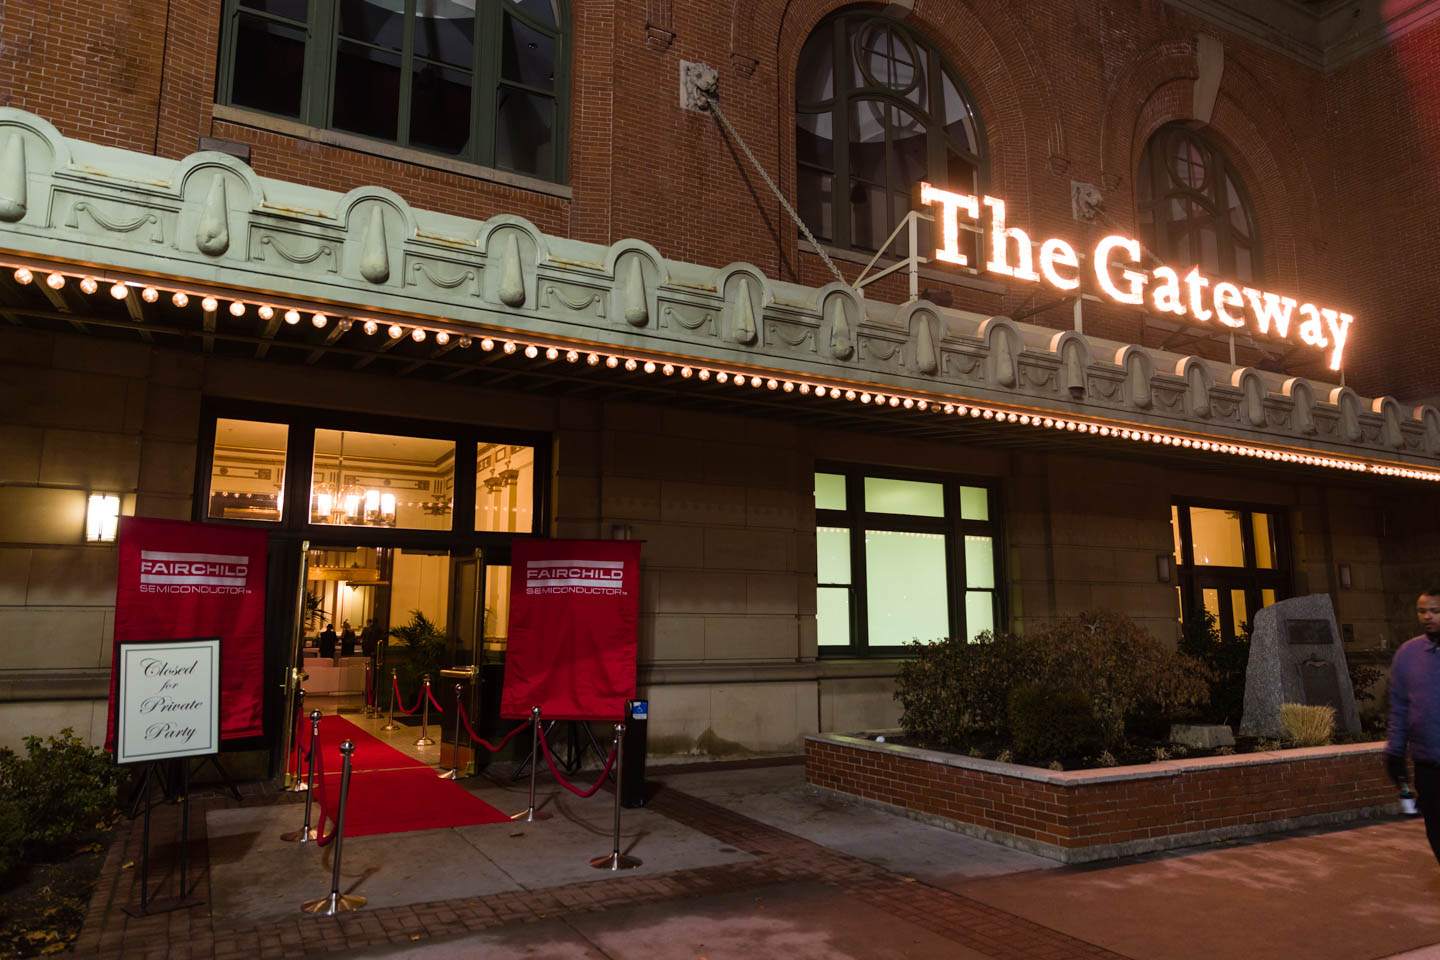 Red carpet entrance at the Gateway's Grand Hall which was part of the Union Pacific